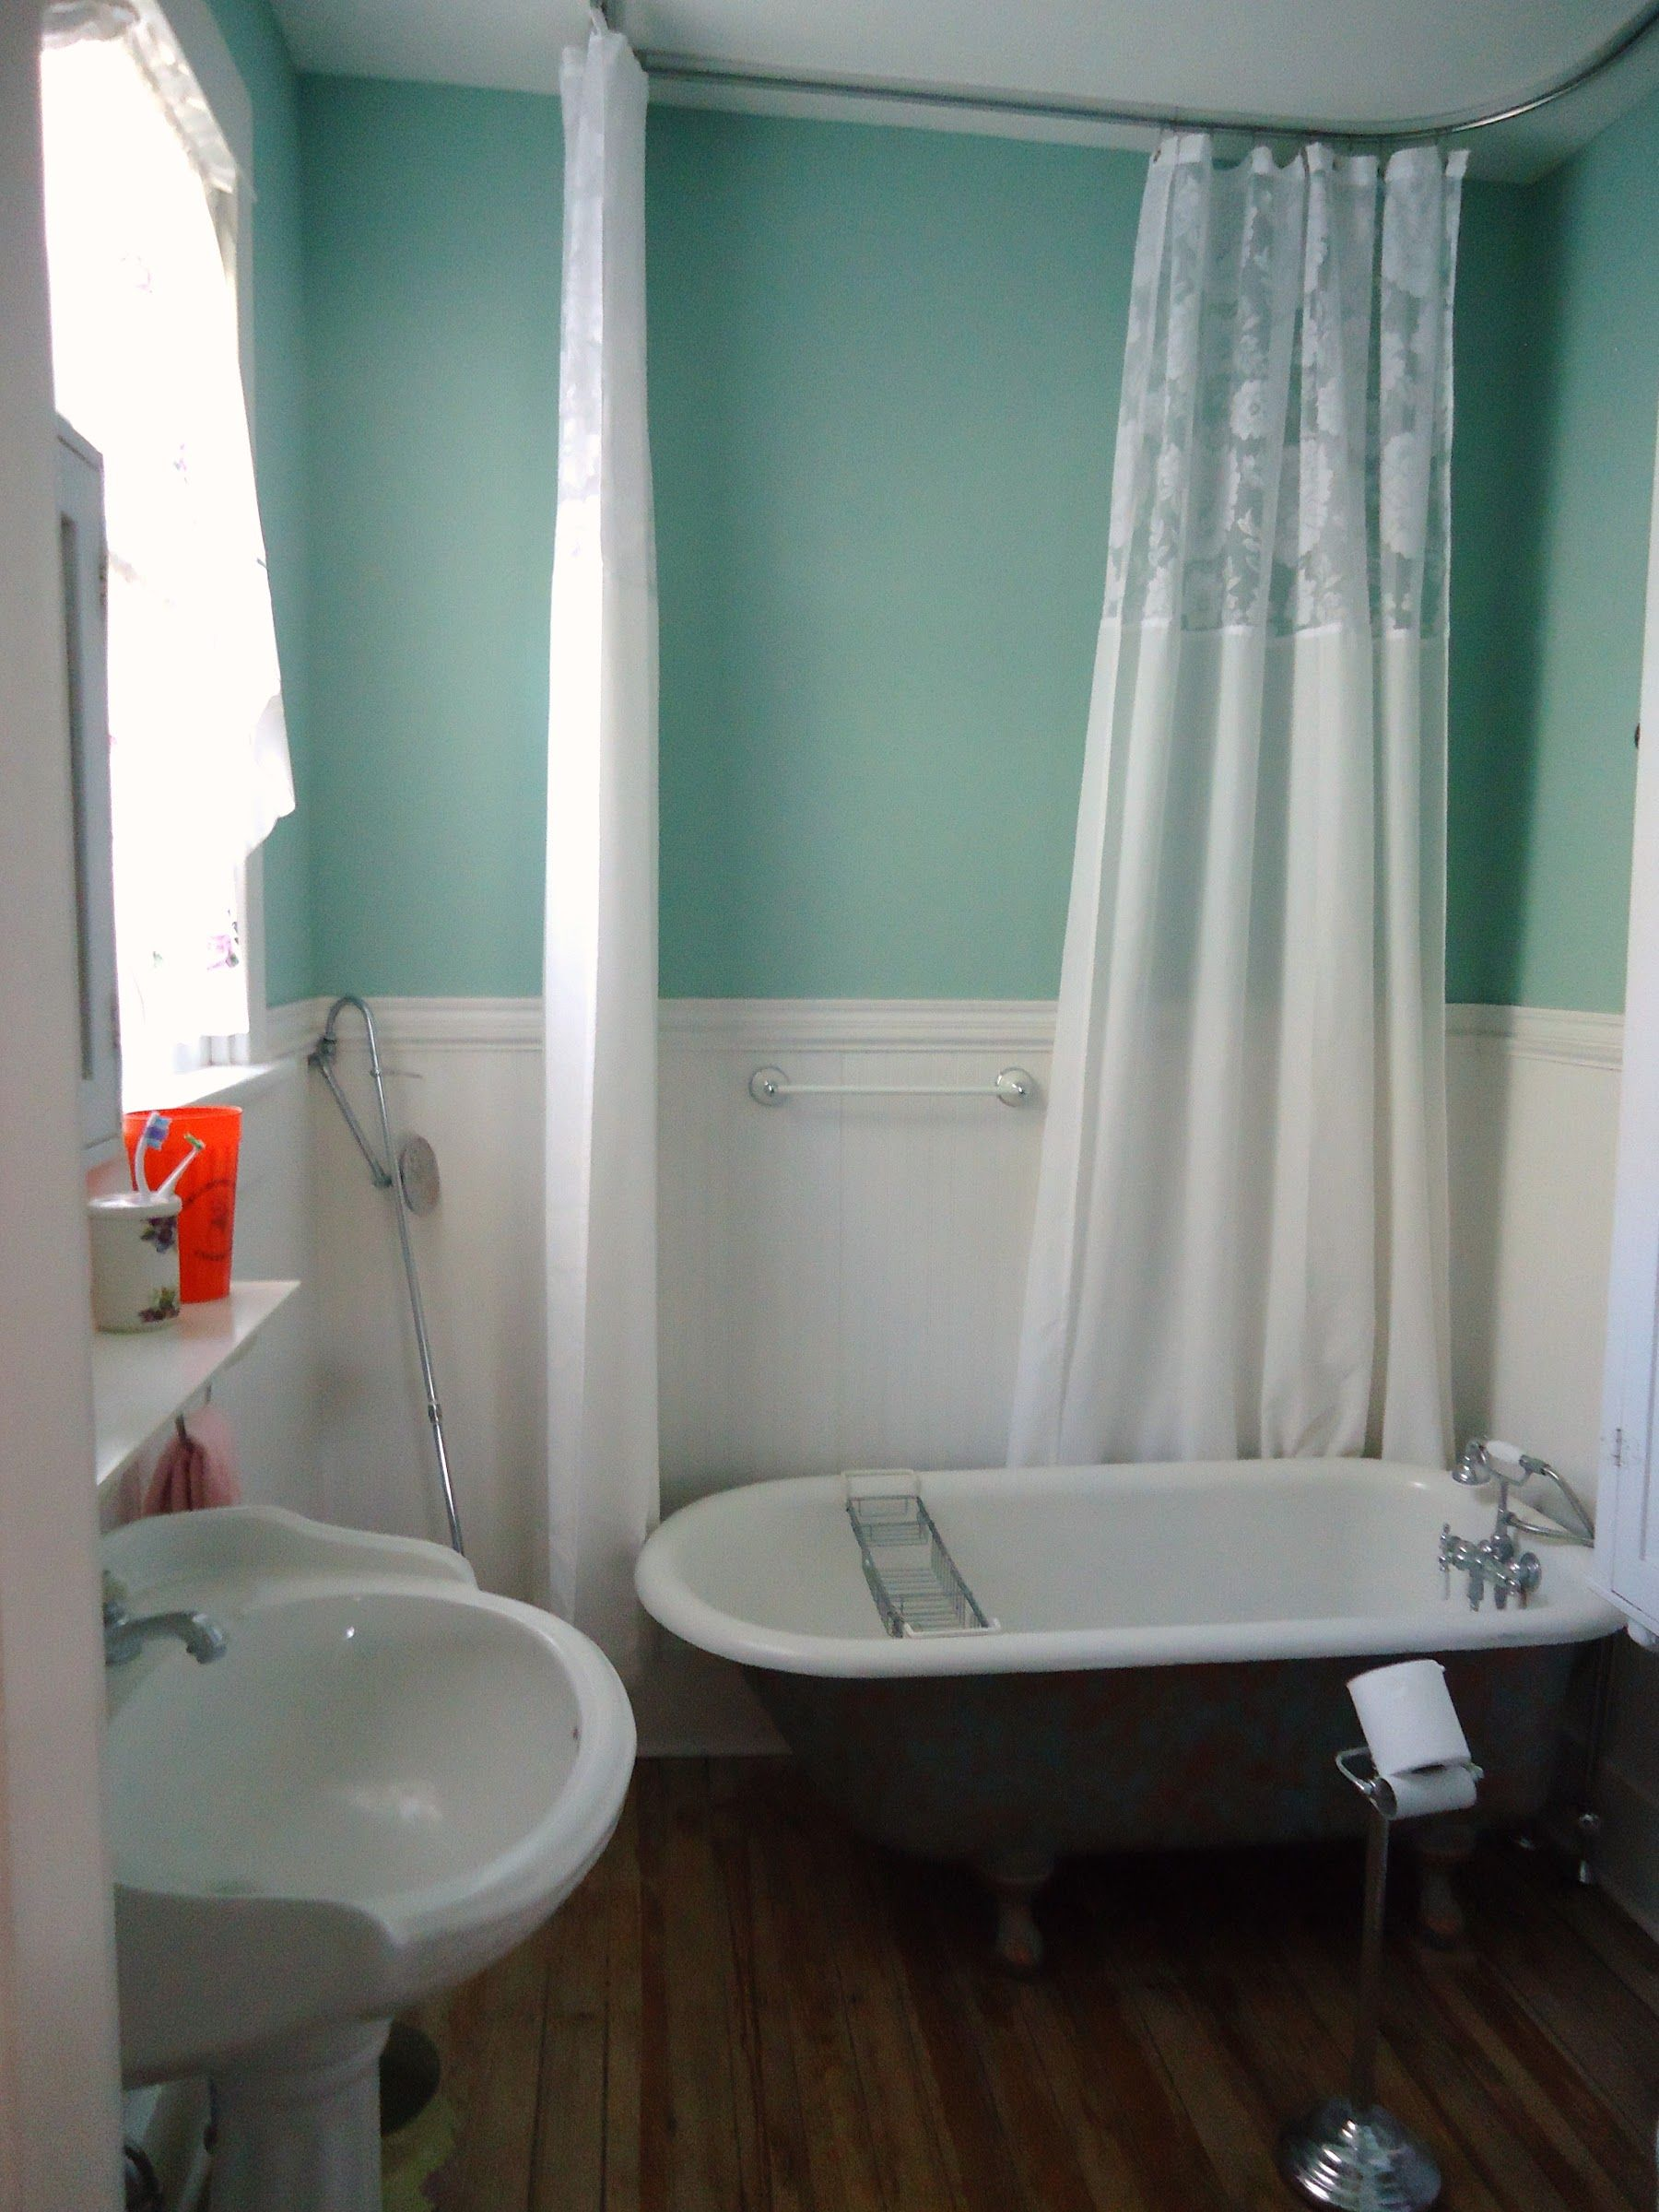 Decorating Bathroom Ideas Appliances Fascinating White Green Small Bathroom  With White Clawfoot Tub And White Floral Pattern Shower Curtain Inspiring  ...